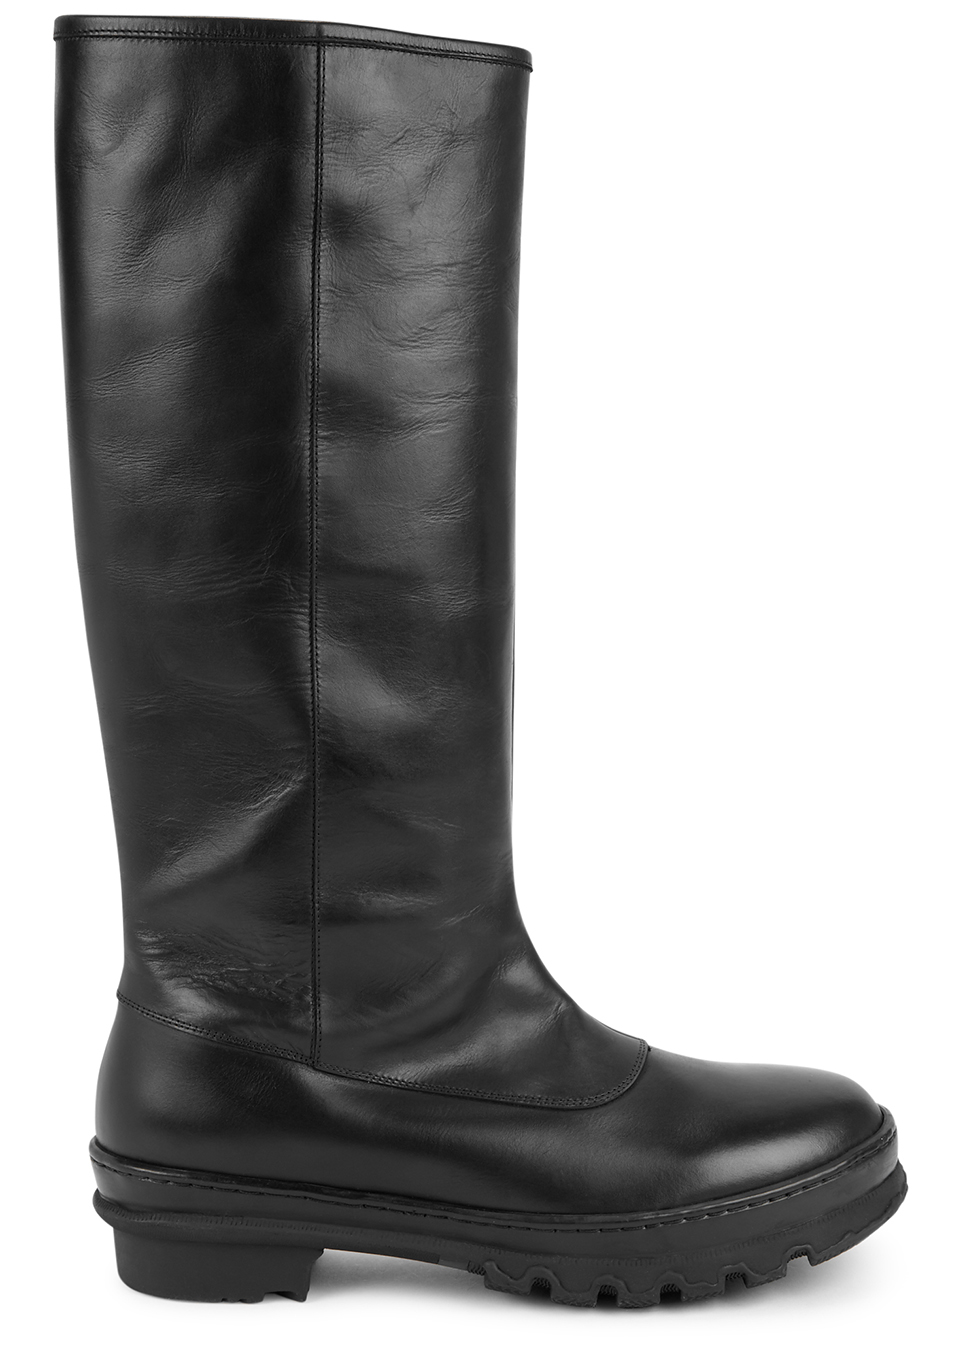 Garden black leather knee-high boots